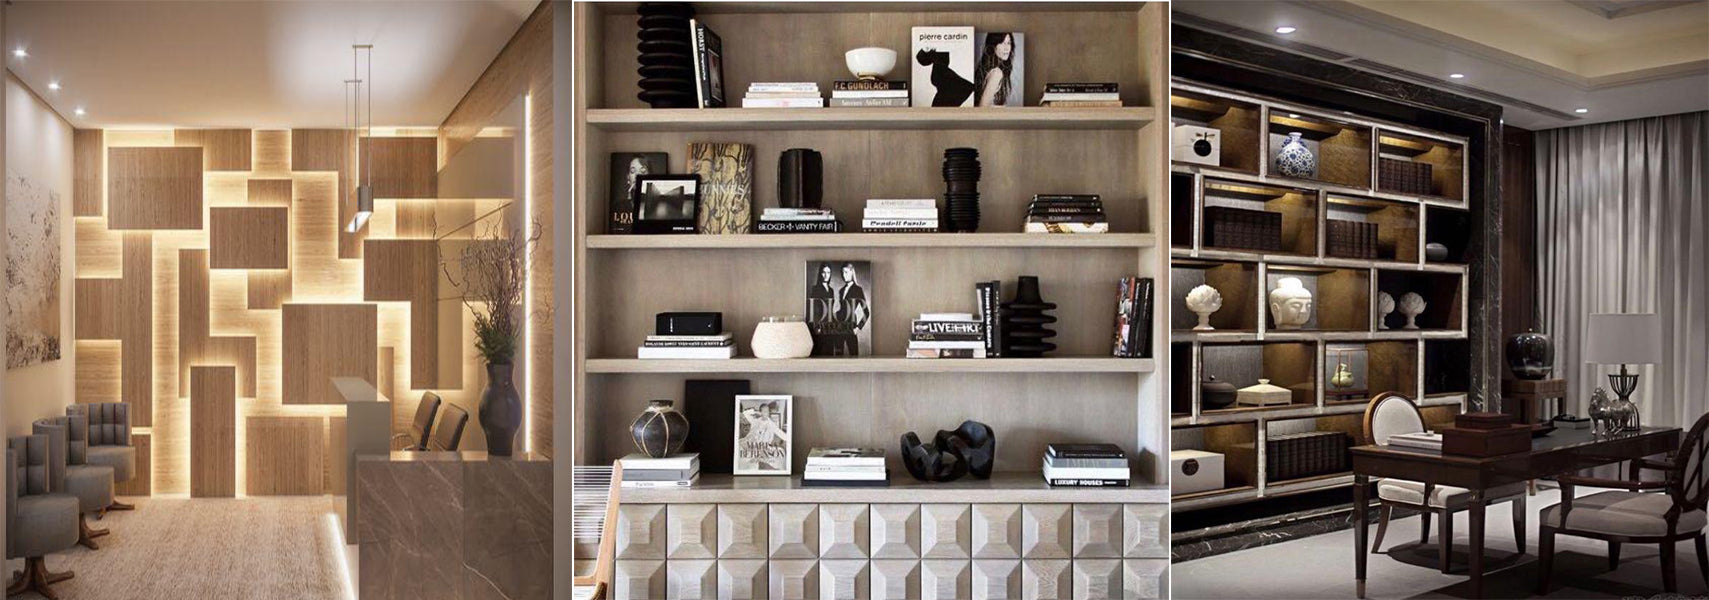 Angie Kripalani Design's Storage Spaces to Highlight Your Wall Elevation With Beautiful Shelves In Modern and Fusion Design.